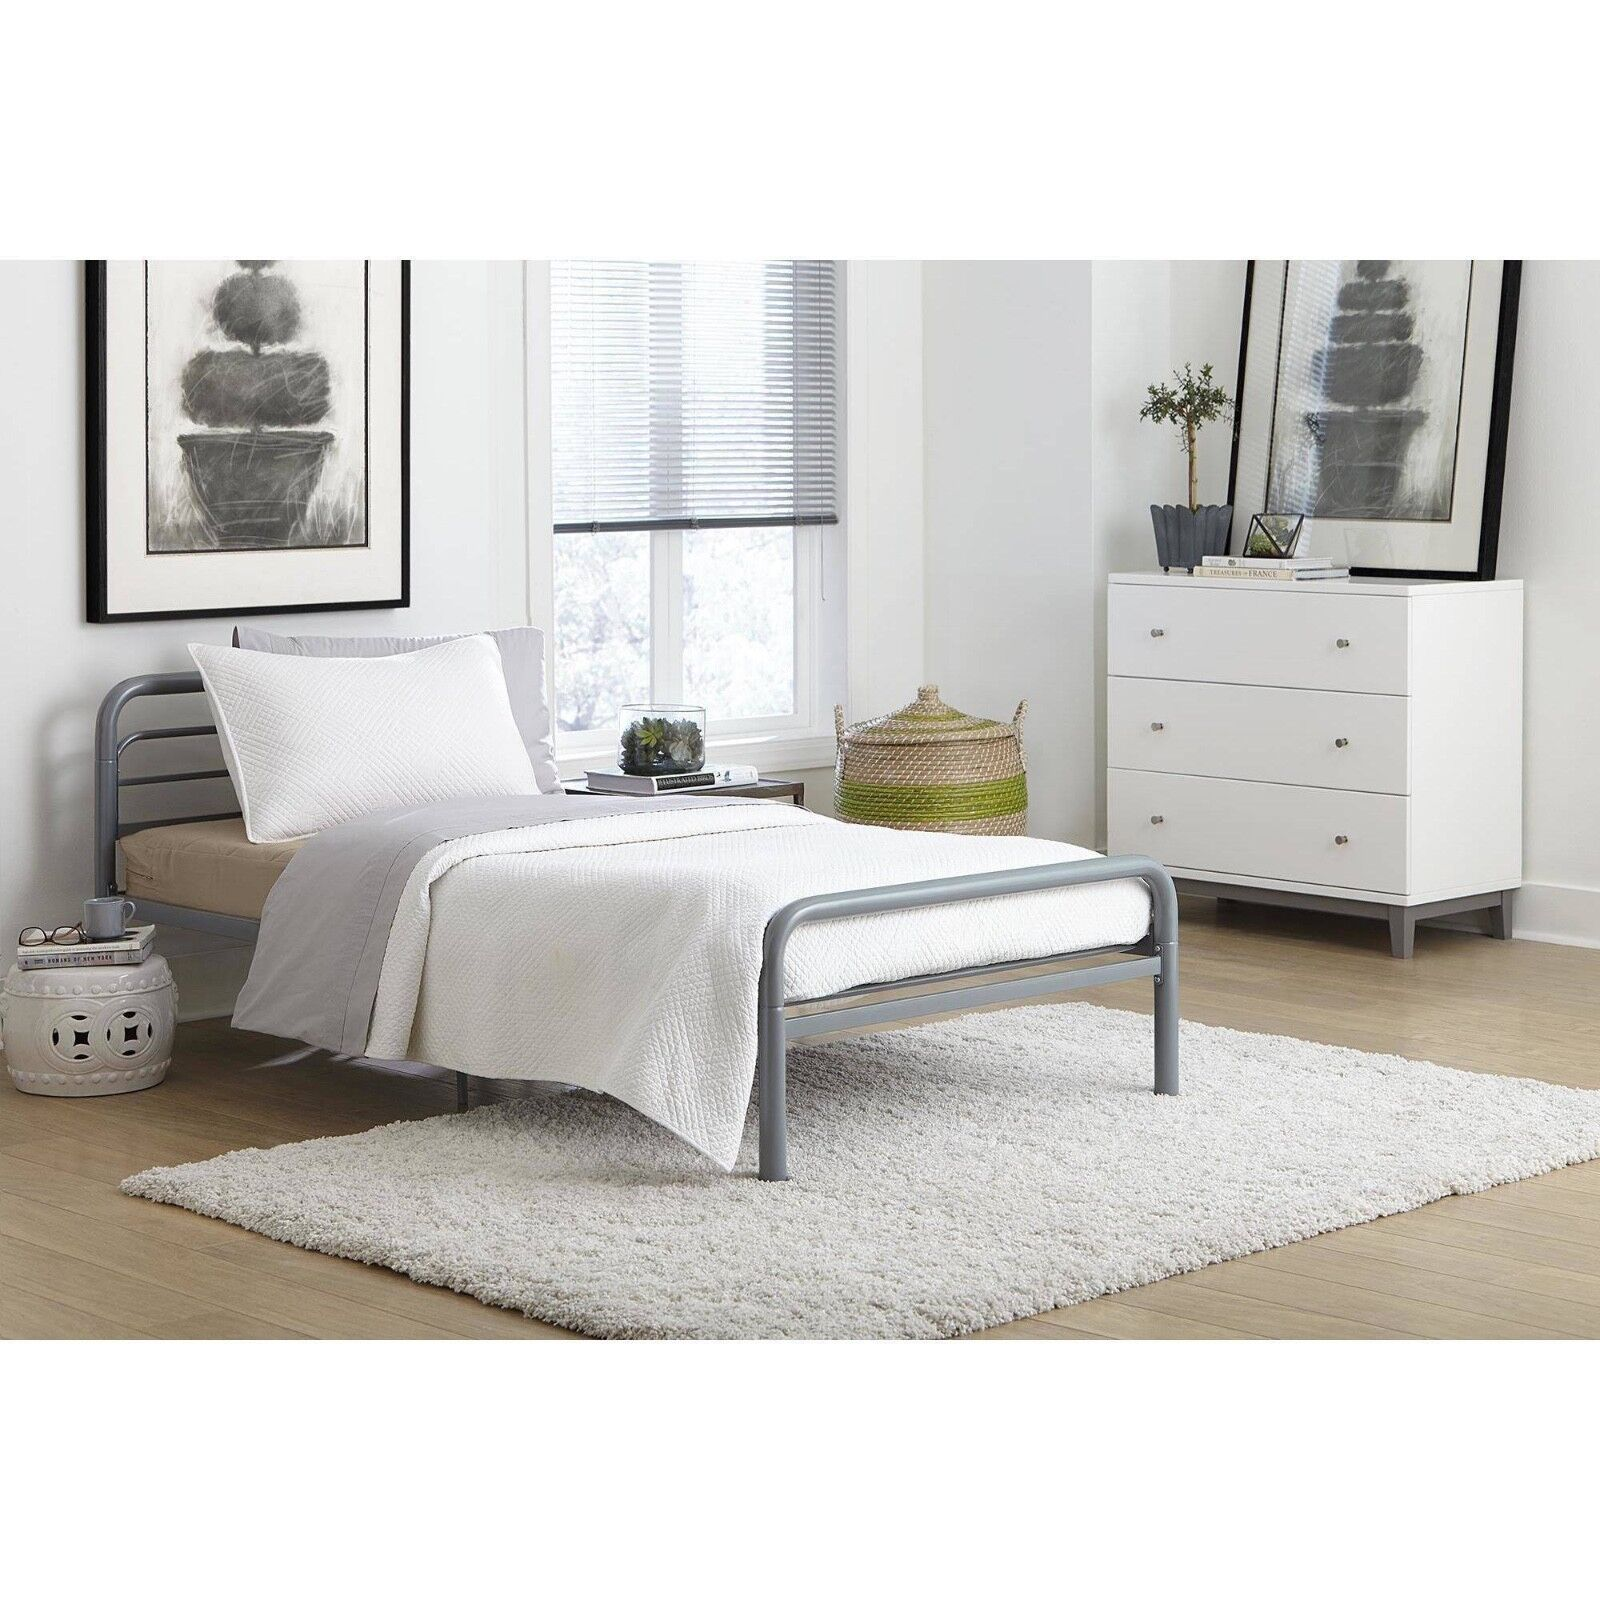 """Dorel Home 6/"""" Twin Quilted Mattress Multiple Colors *BRAND NEW*"""